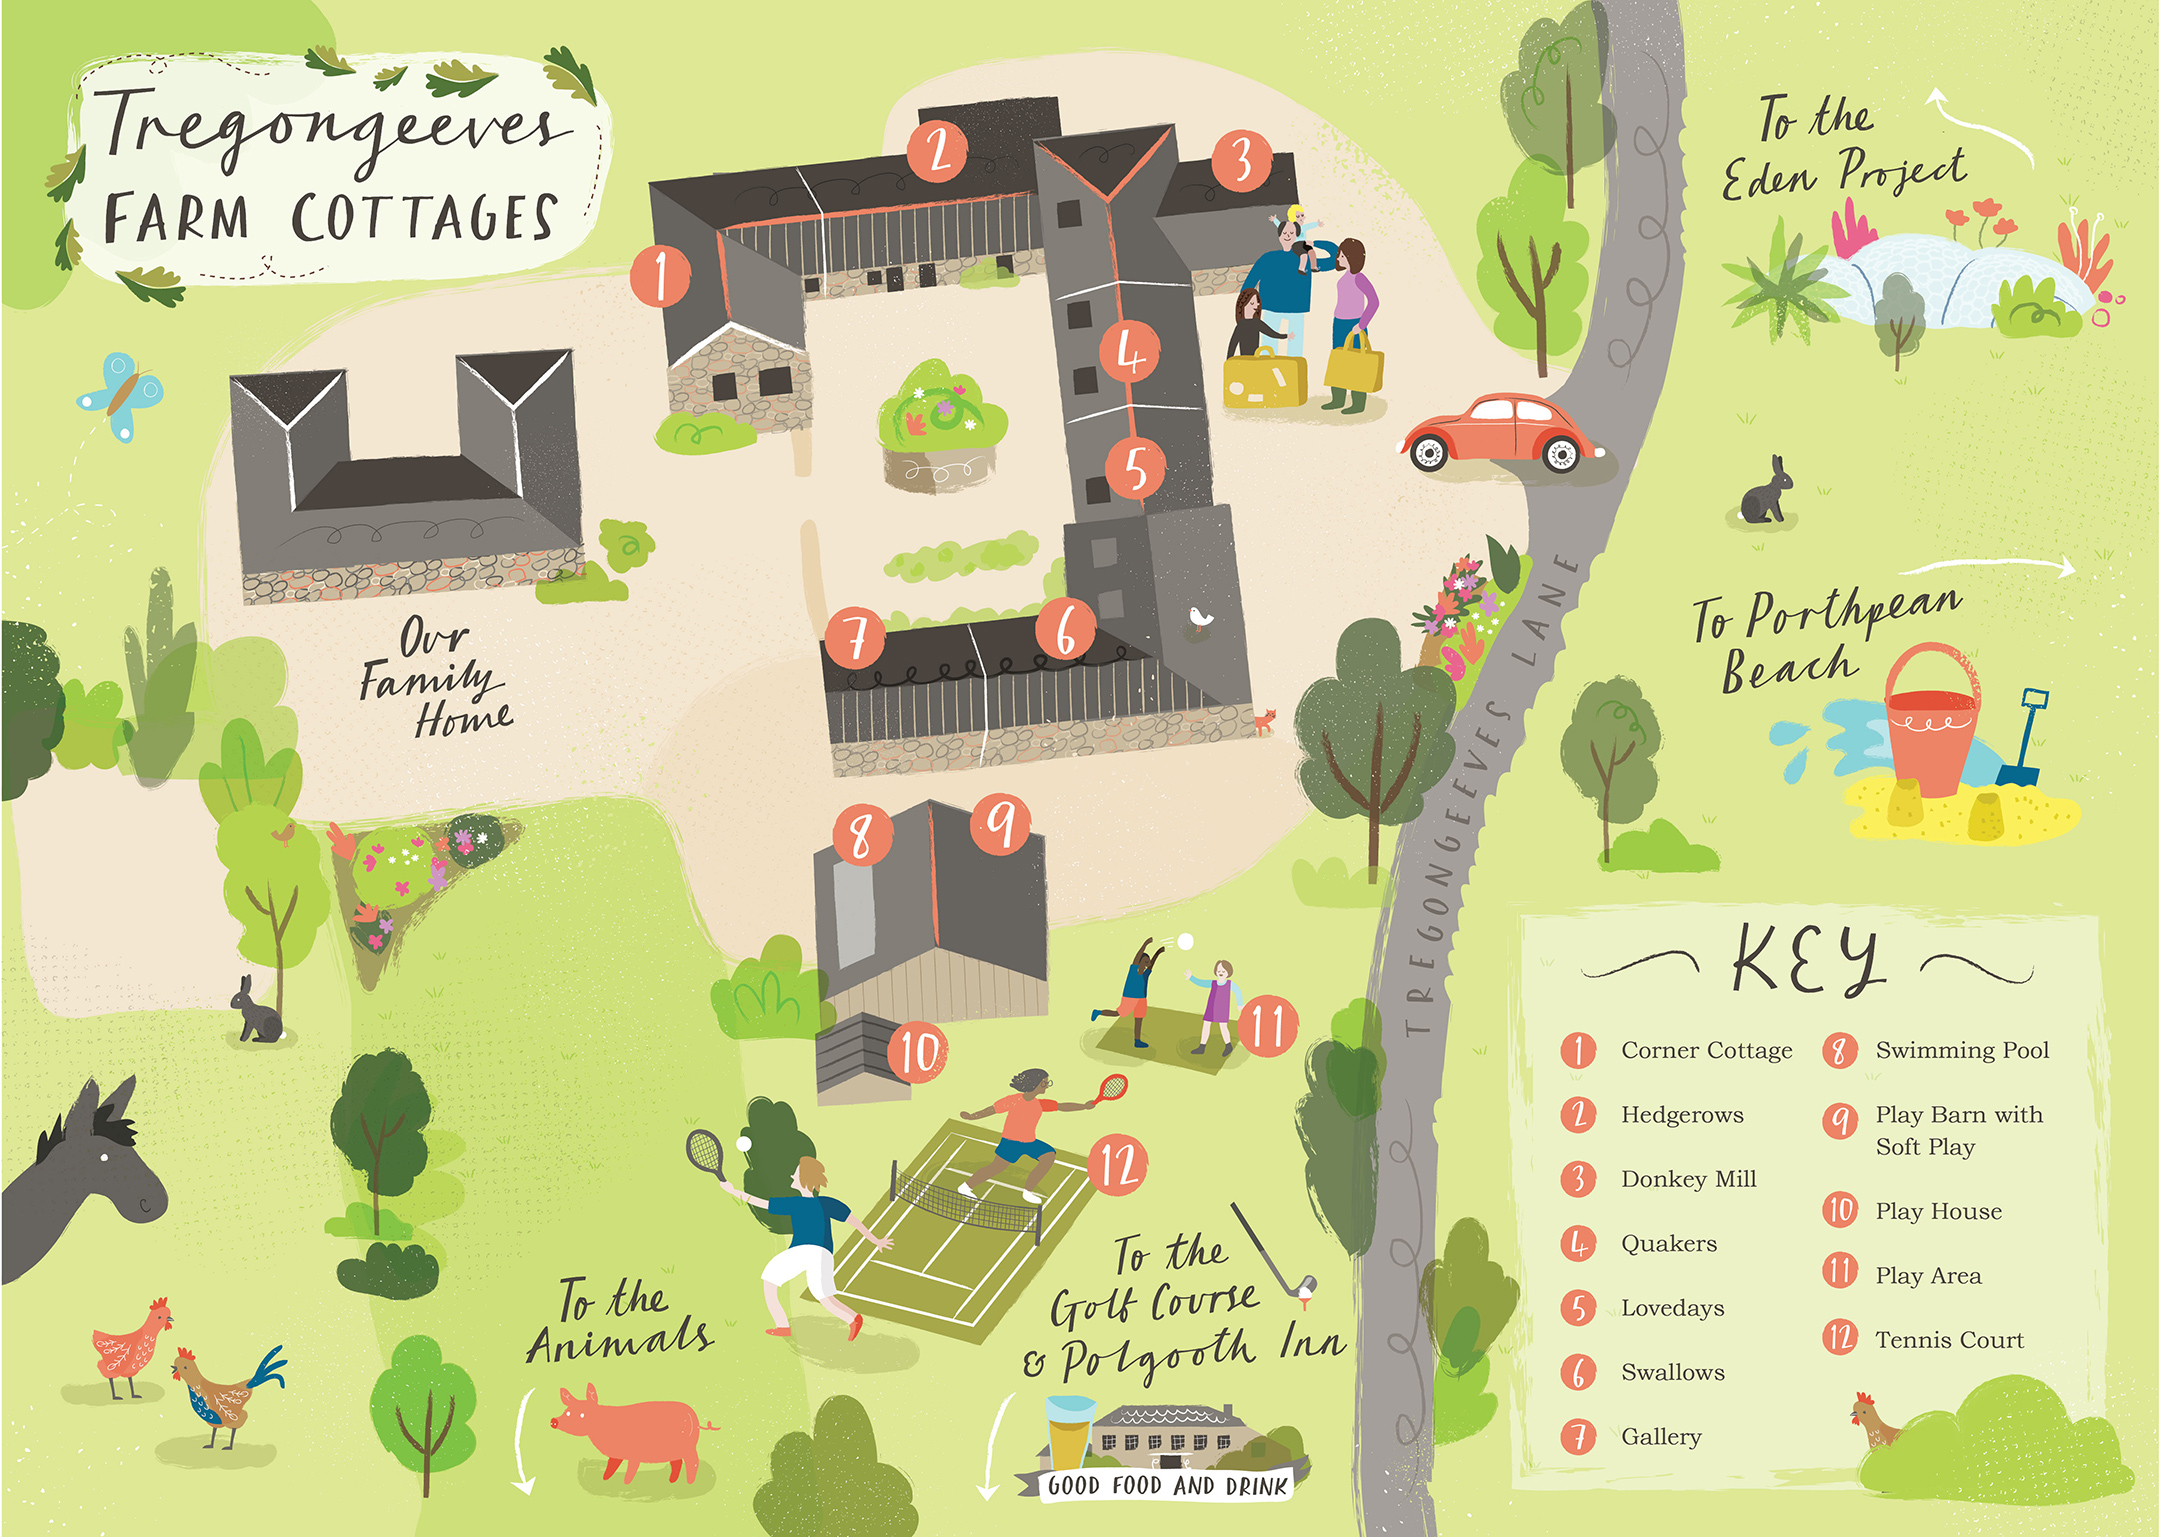 Illustrated map od Tregongeeves Farm Cottages